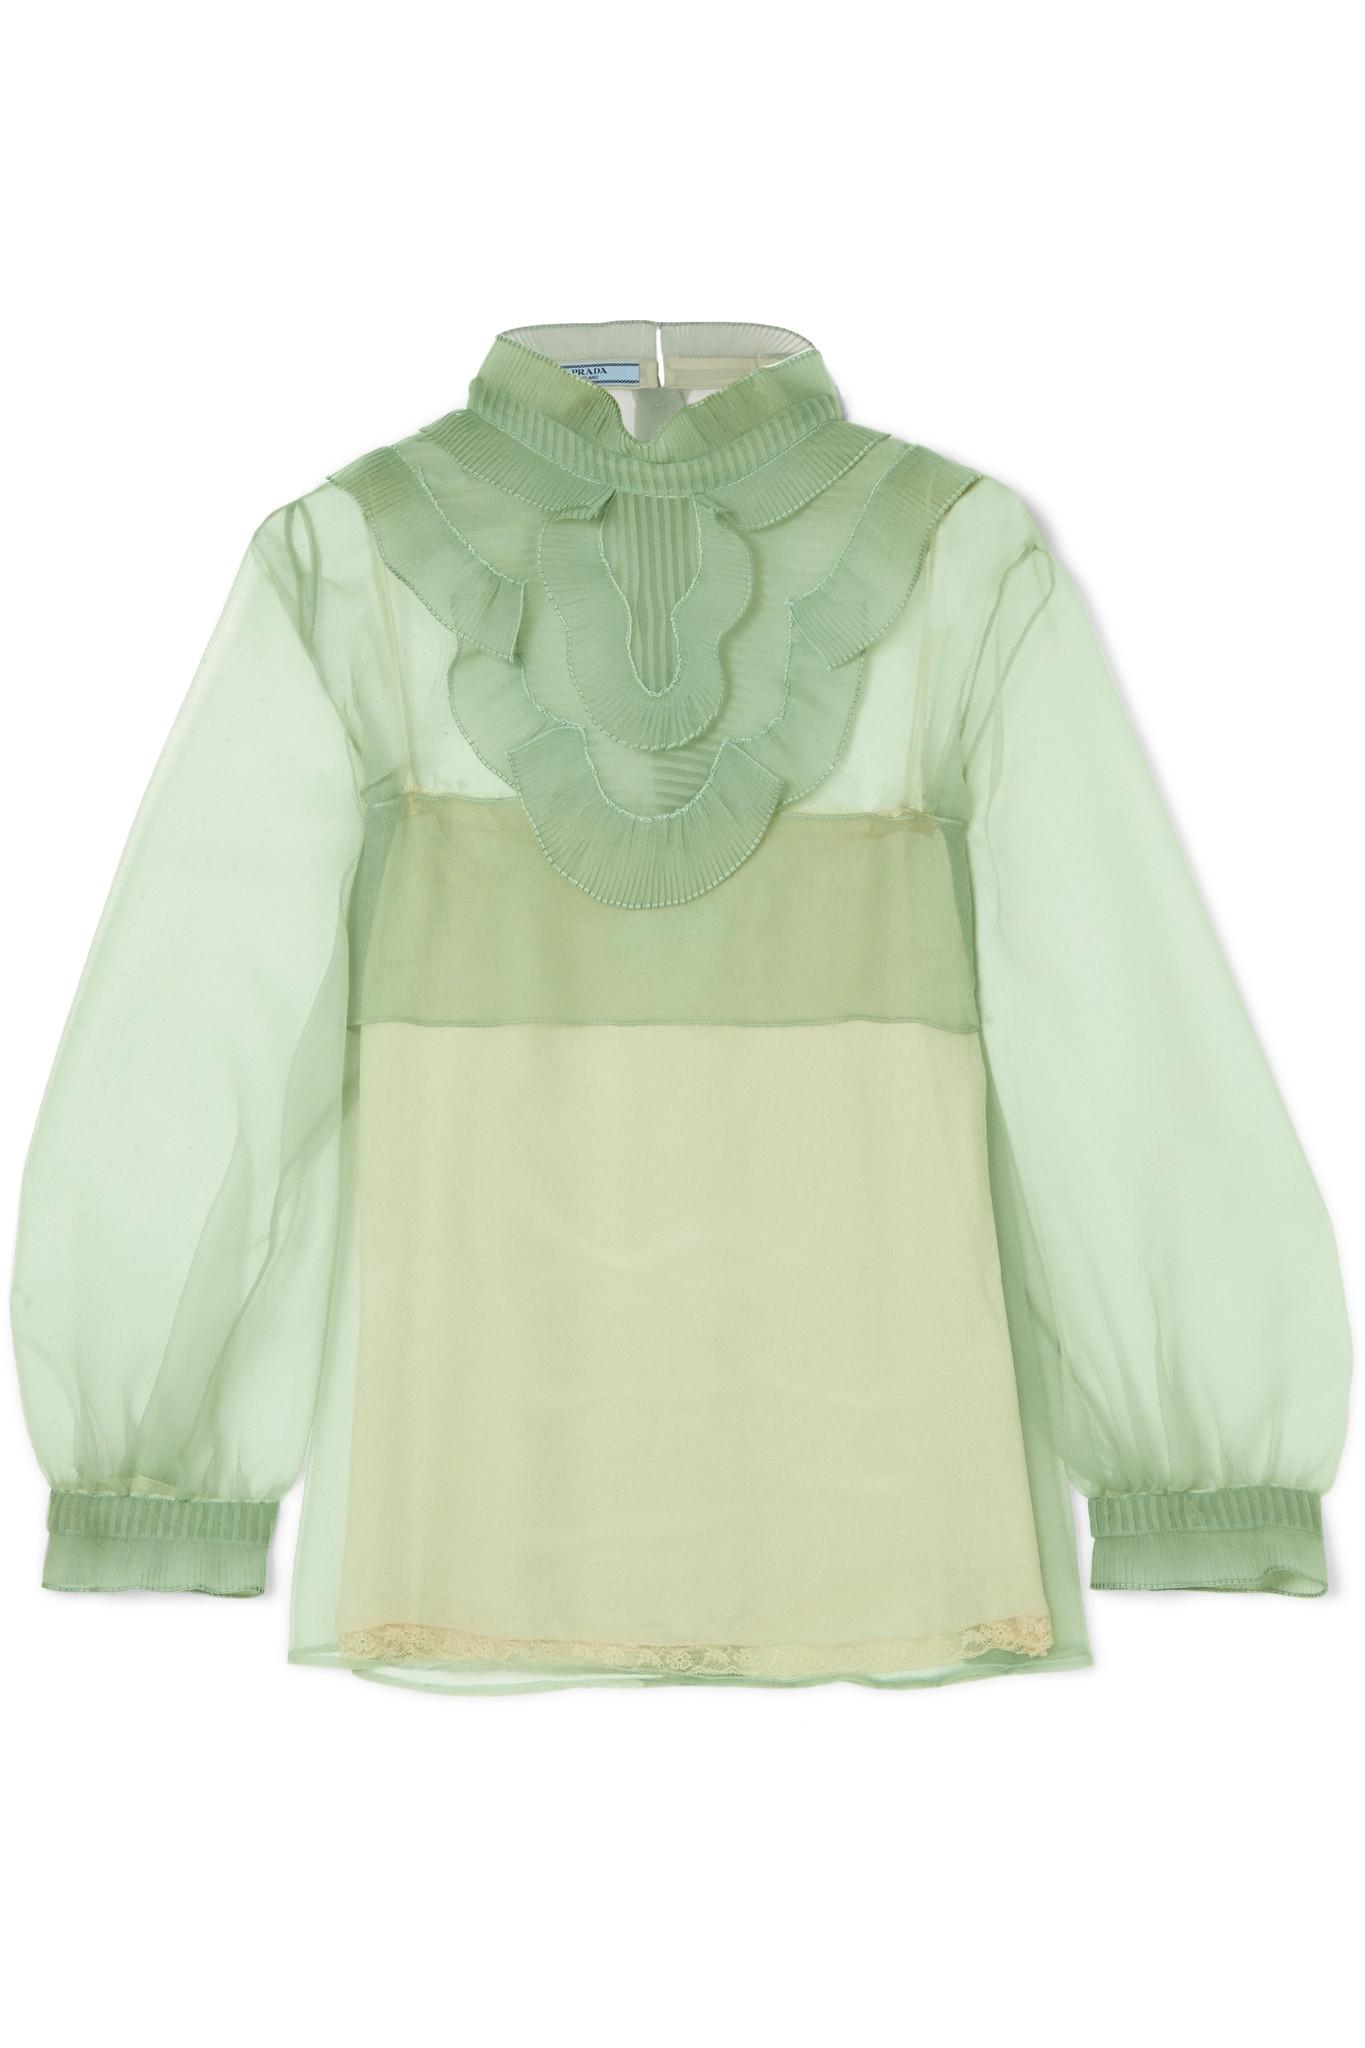 9b048e8d929cbb Lyst - Prada Ruffled Organza Blouse in Green